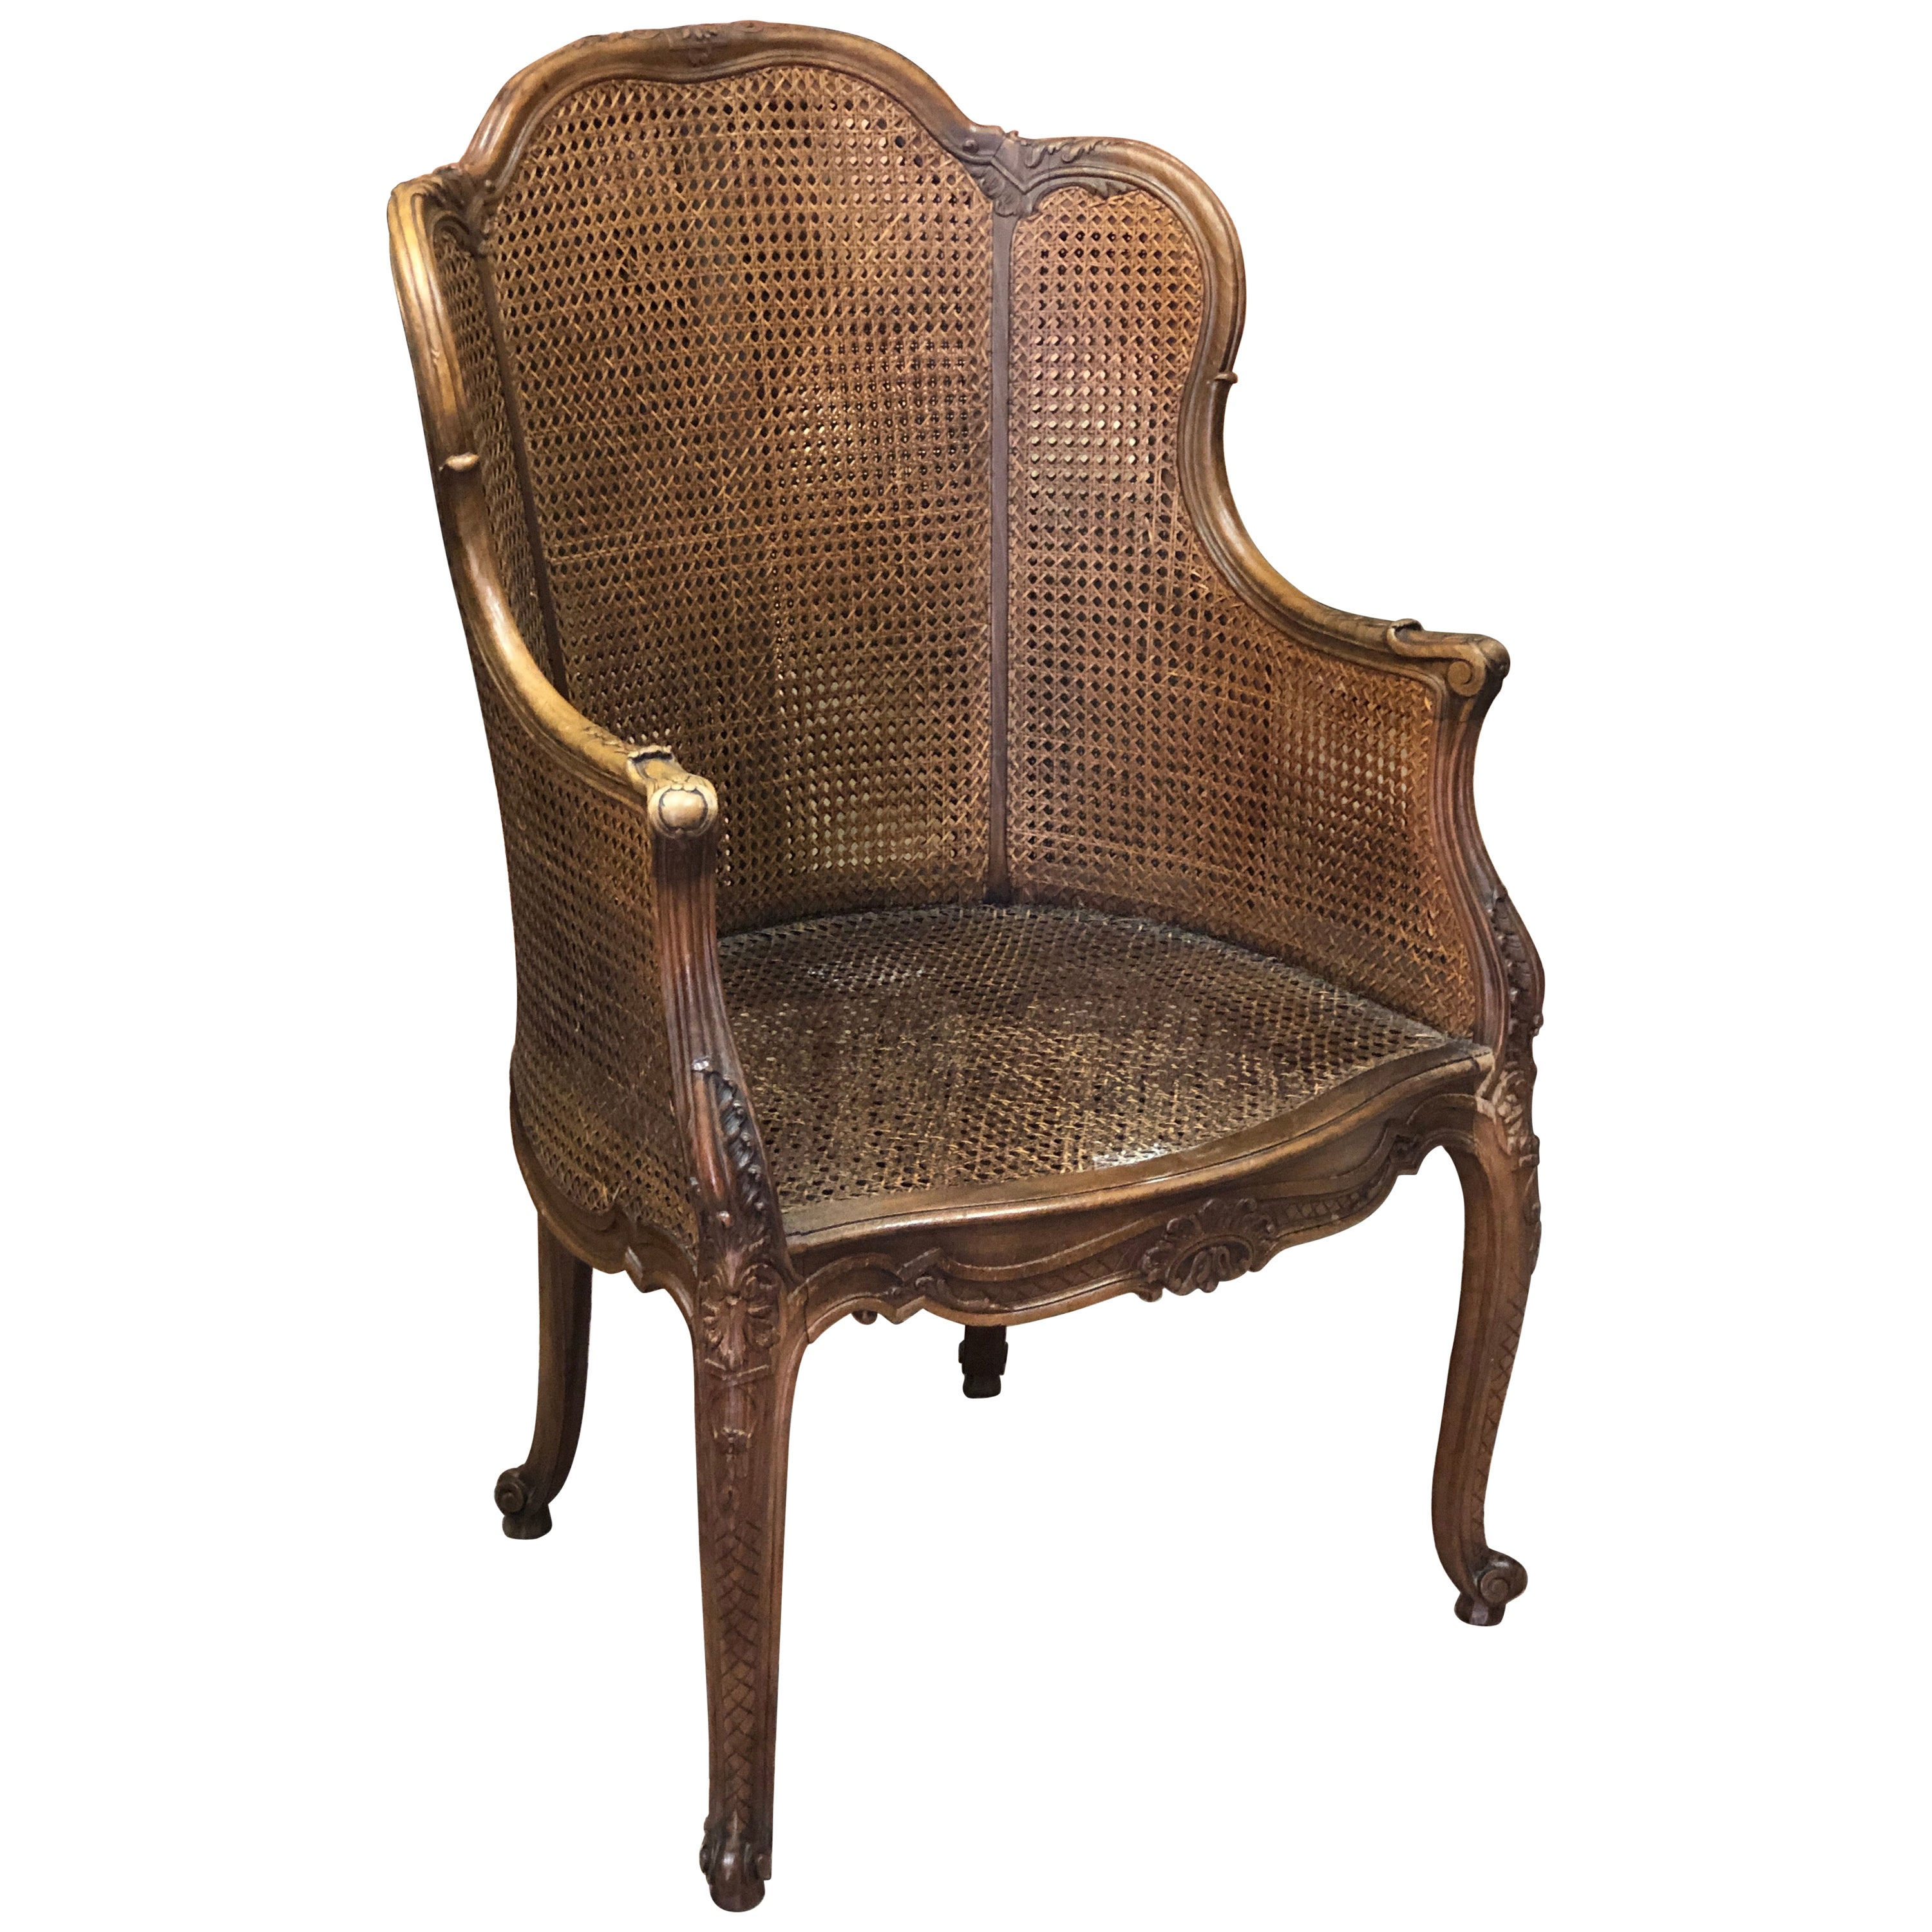 19th Century French Double Caning Bergère Armchair in Louis XV Style